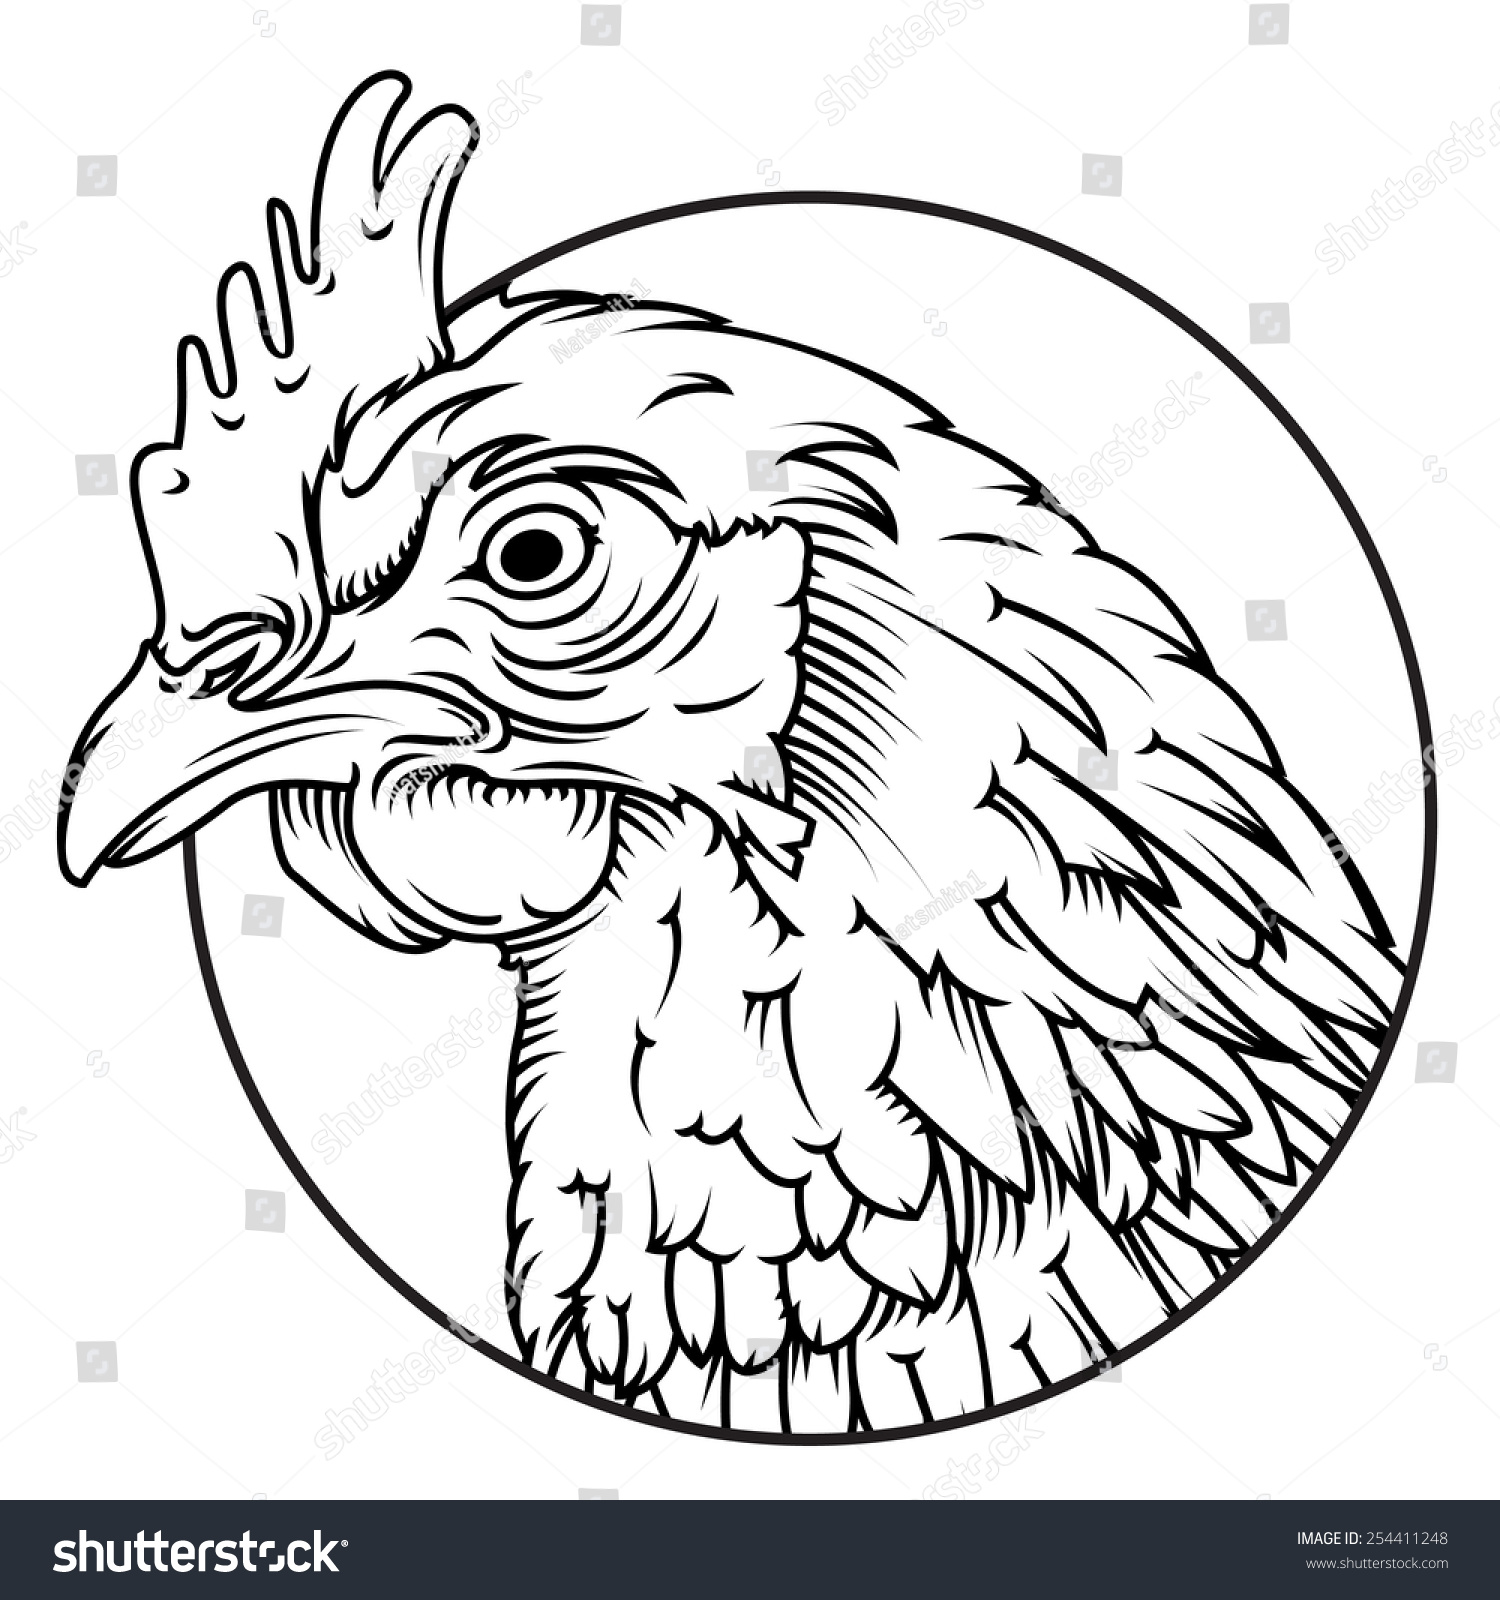 Line Drawing Chicken : Chicken line drawing pixshark images galleries